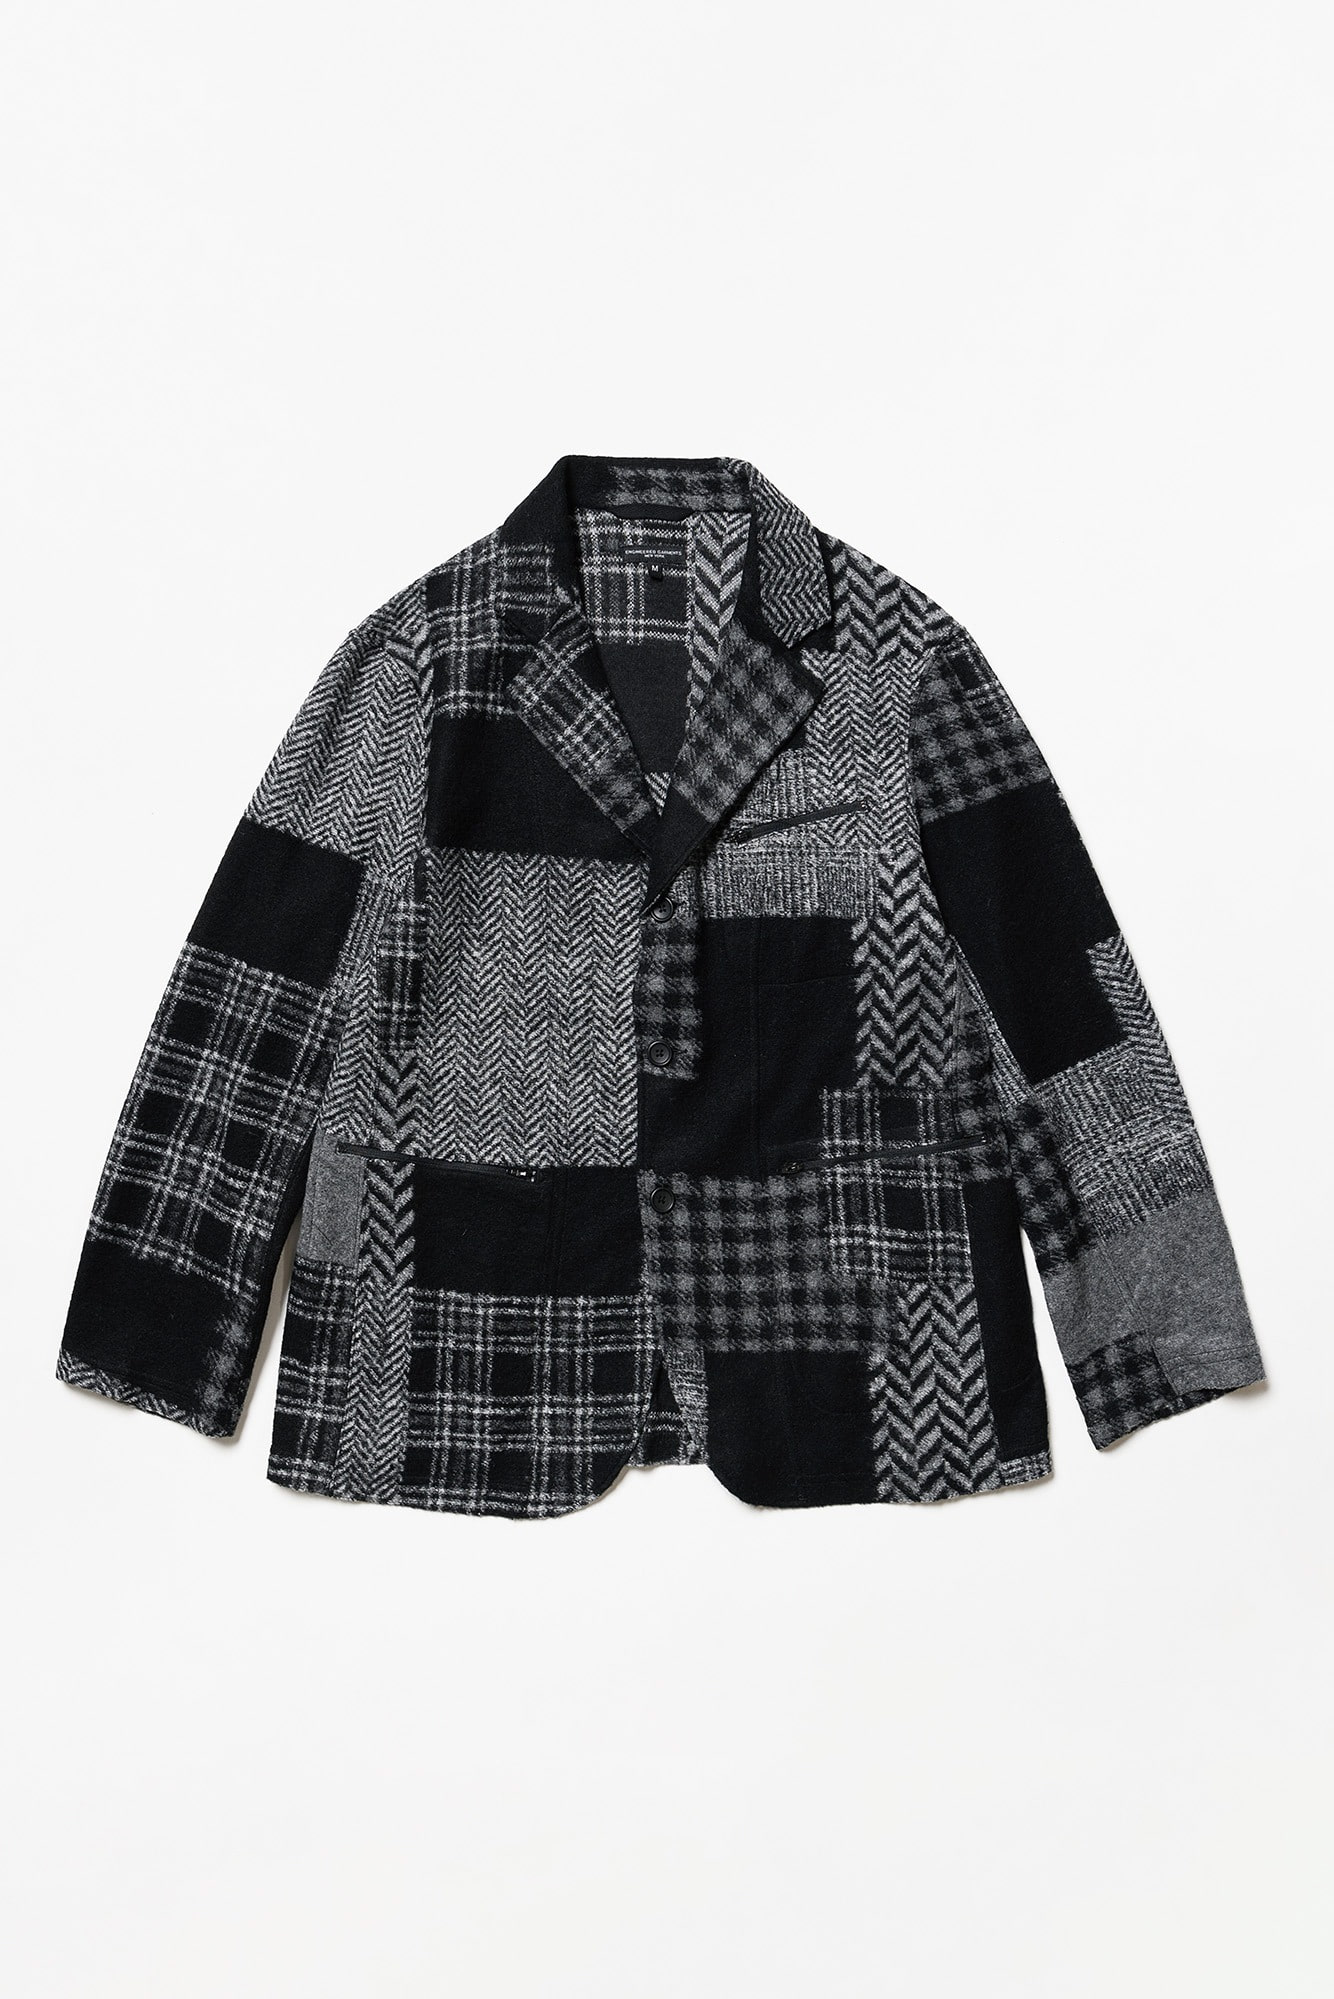 "ENGINEERED GARMENTS Leisure Jacket ""Black/Grey Knit Patchwork Herringbone"""